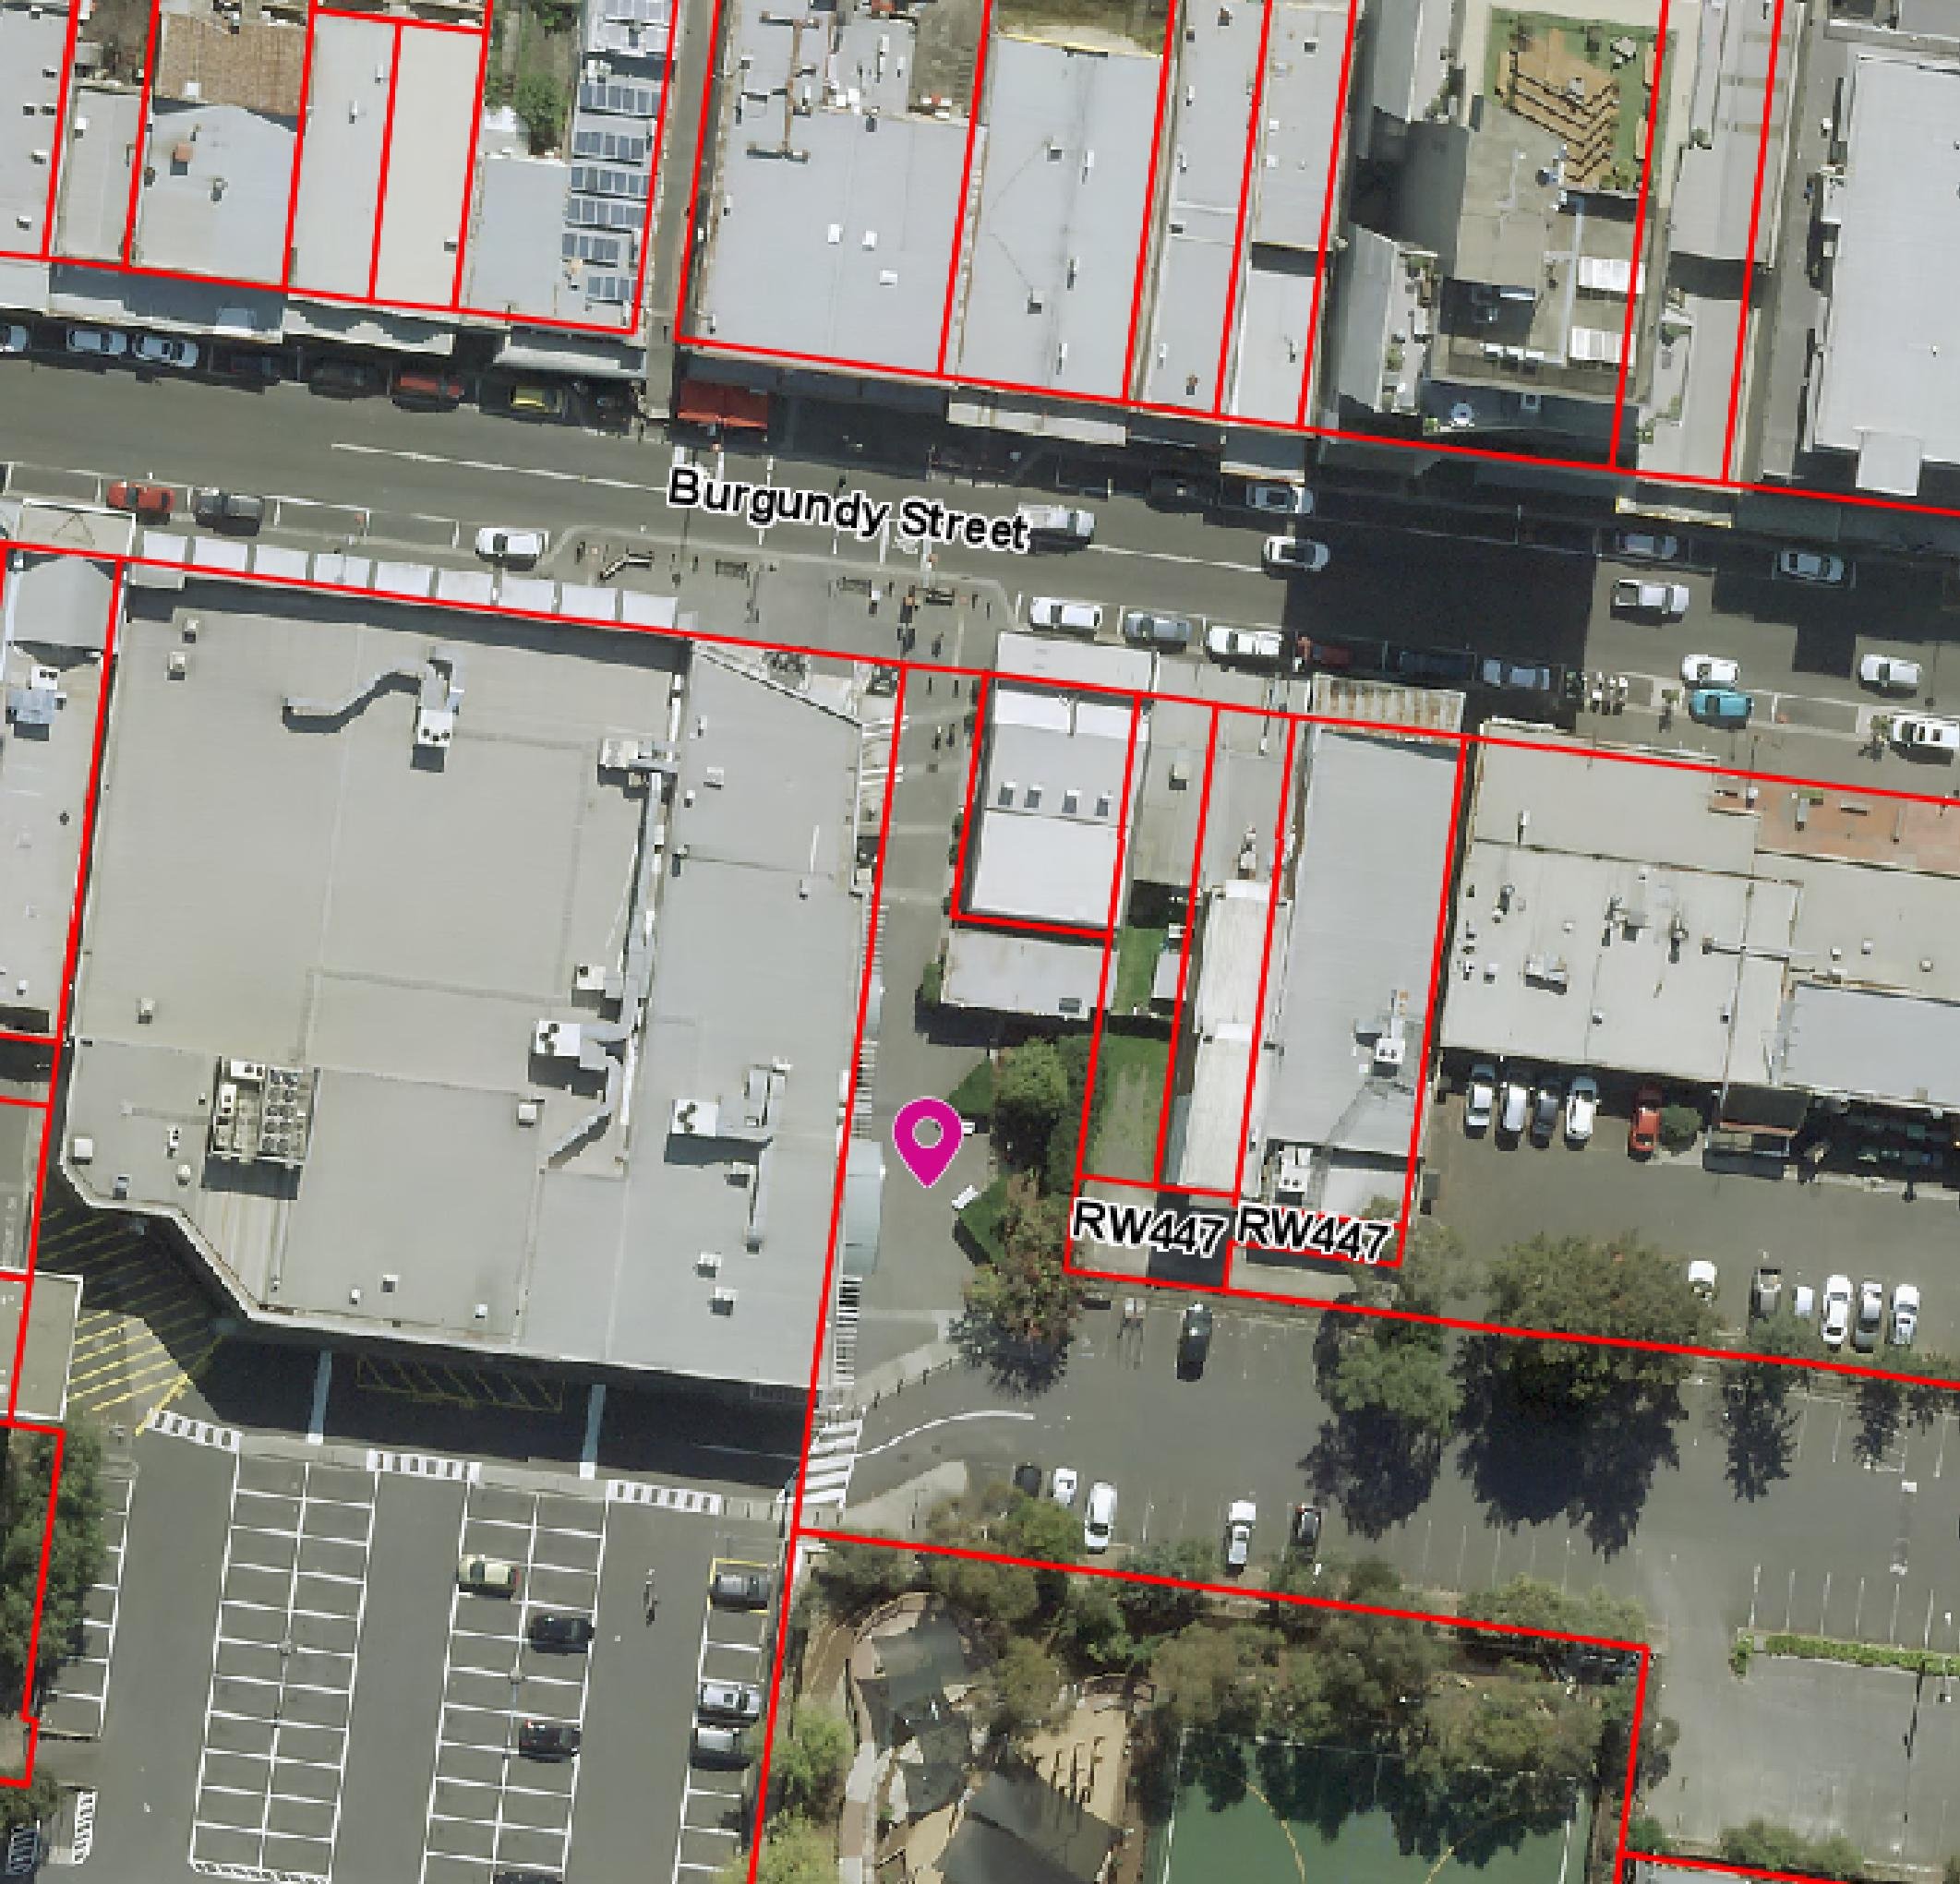 Aerial map of pop up park location